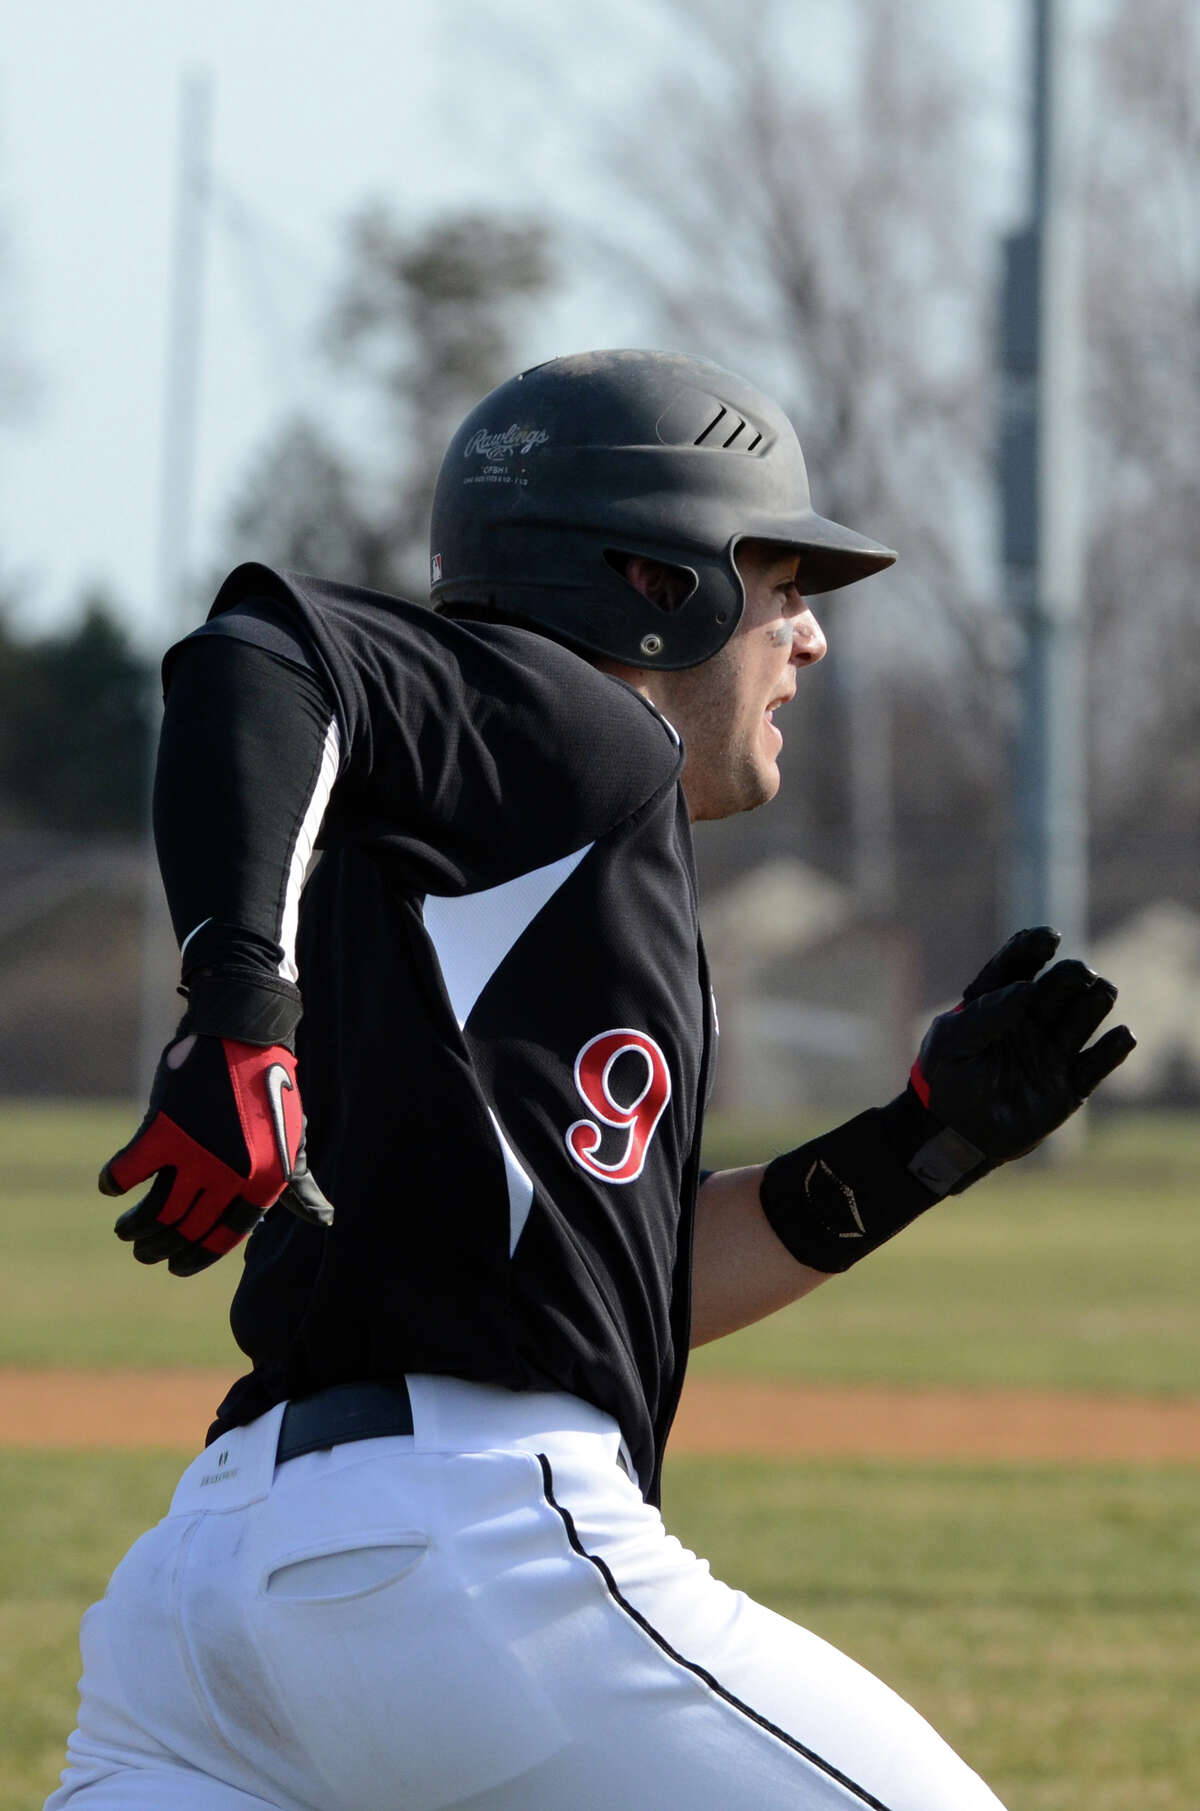 New Canaan's Nick Cascione (9) makes a run for first base on a hit during the baseball game against Trumbull at Trumbull High School on Monday, Apr. 8, 2013.